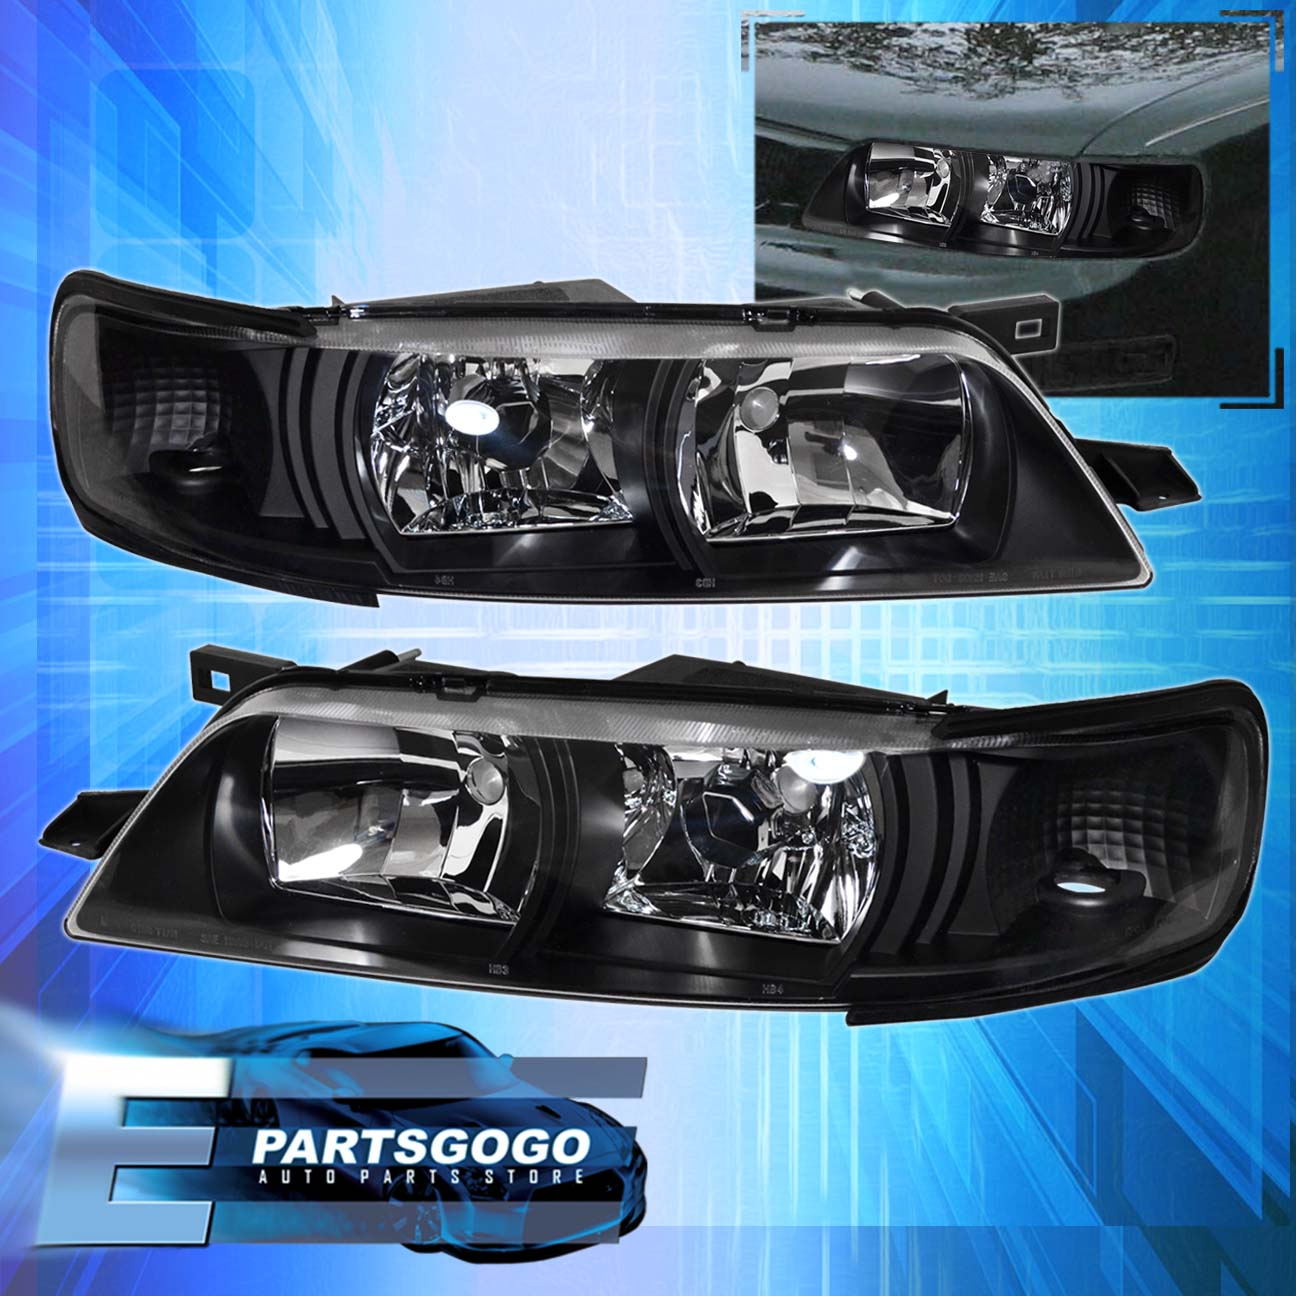 FOR 95 99 Maxima JDM Crystal Black R34 Headlights With 6000K 8 LED DRL Fog  Lamps | EBay